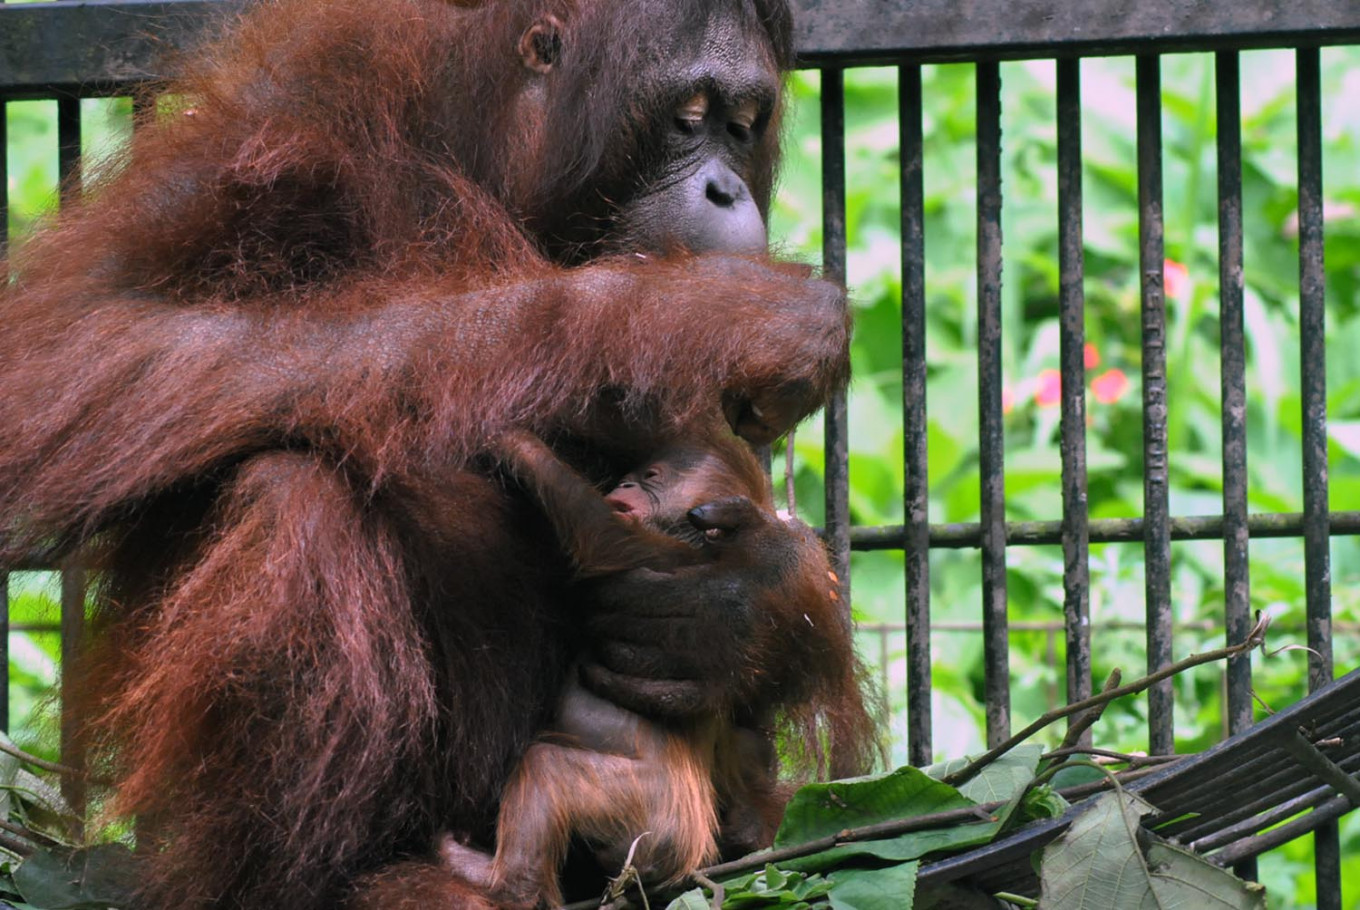 Two Bornean orangutans rescued from illegal captivity in Central Java